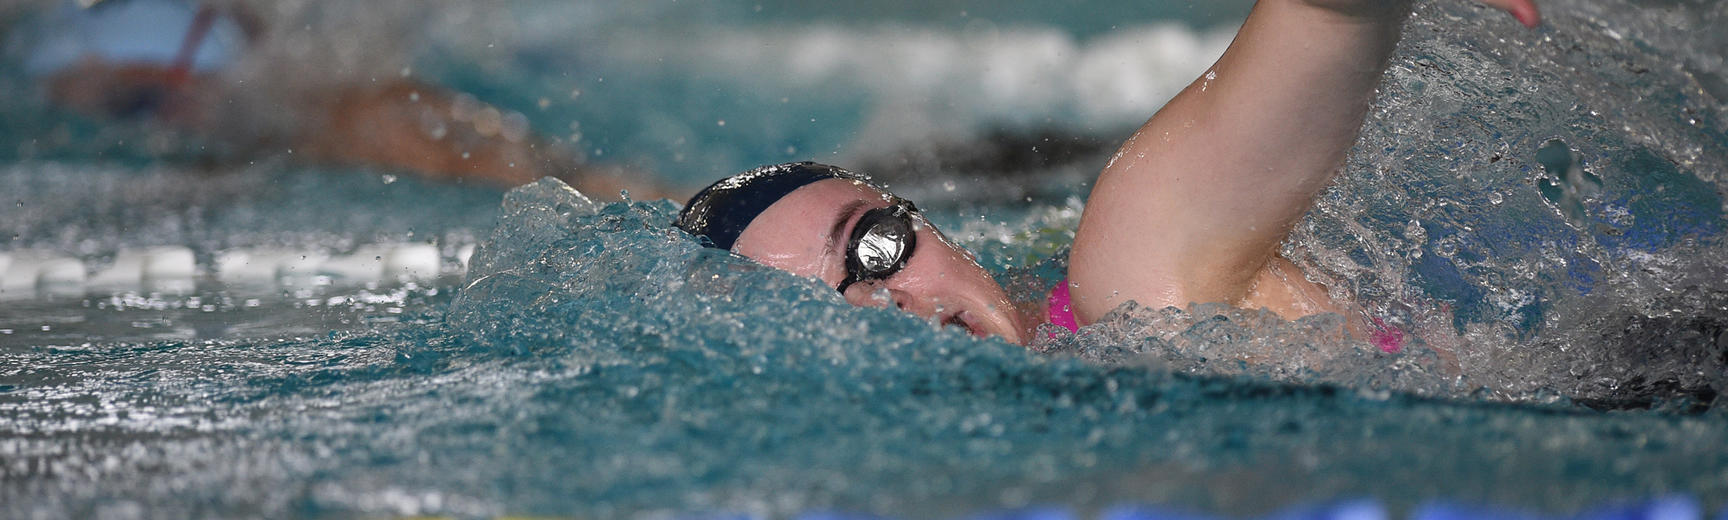 A swimming performing the front crawl - Oxford University images